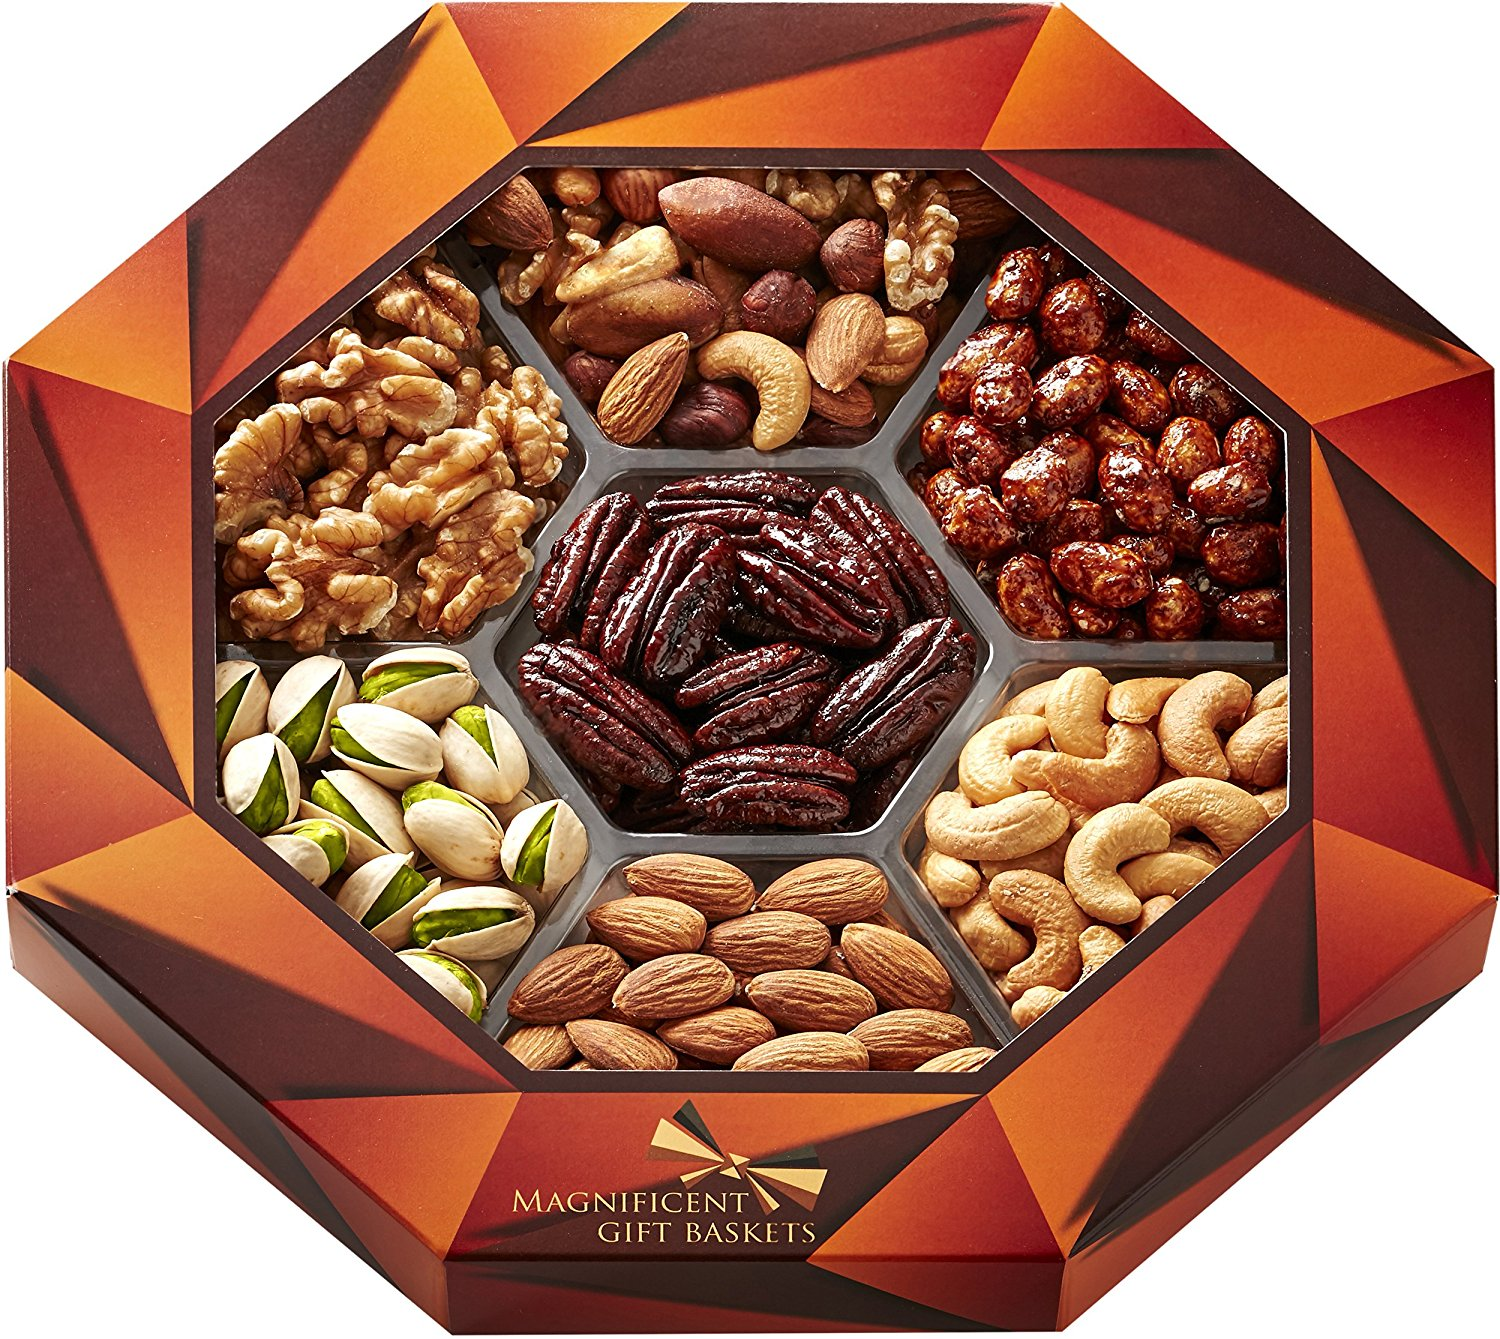 Dried Fruit & Nut Gift Baskets - Best Healthy Gourmet Gifts, Delicious